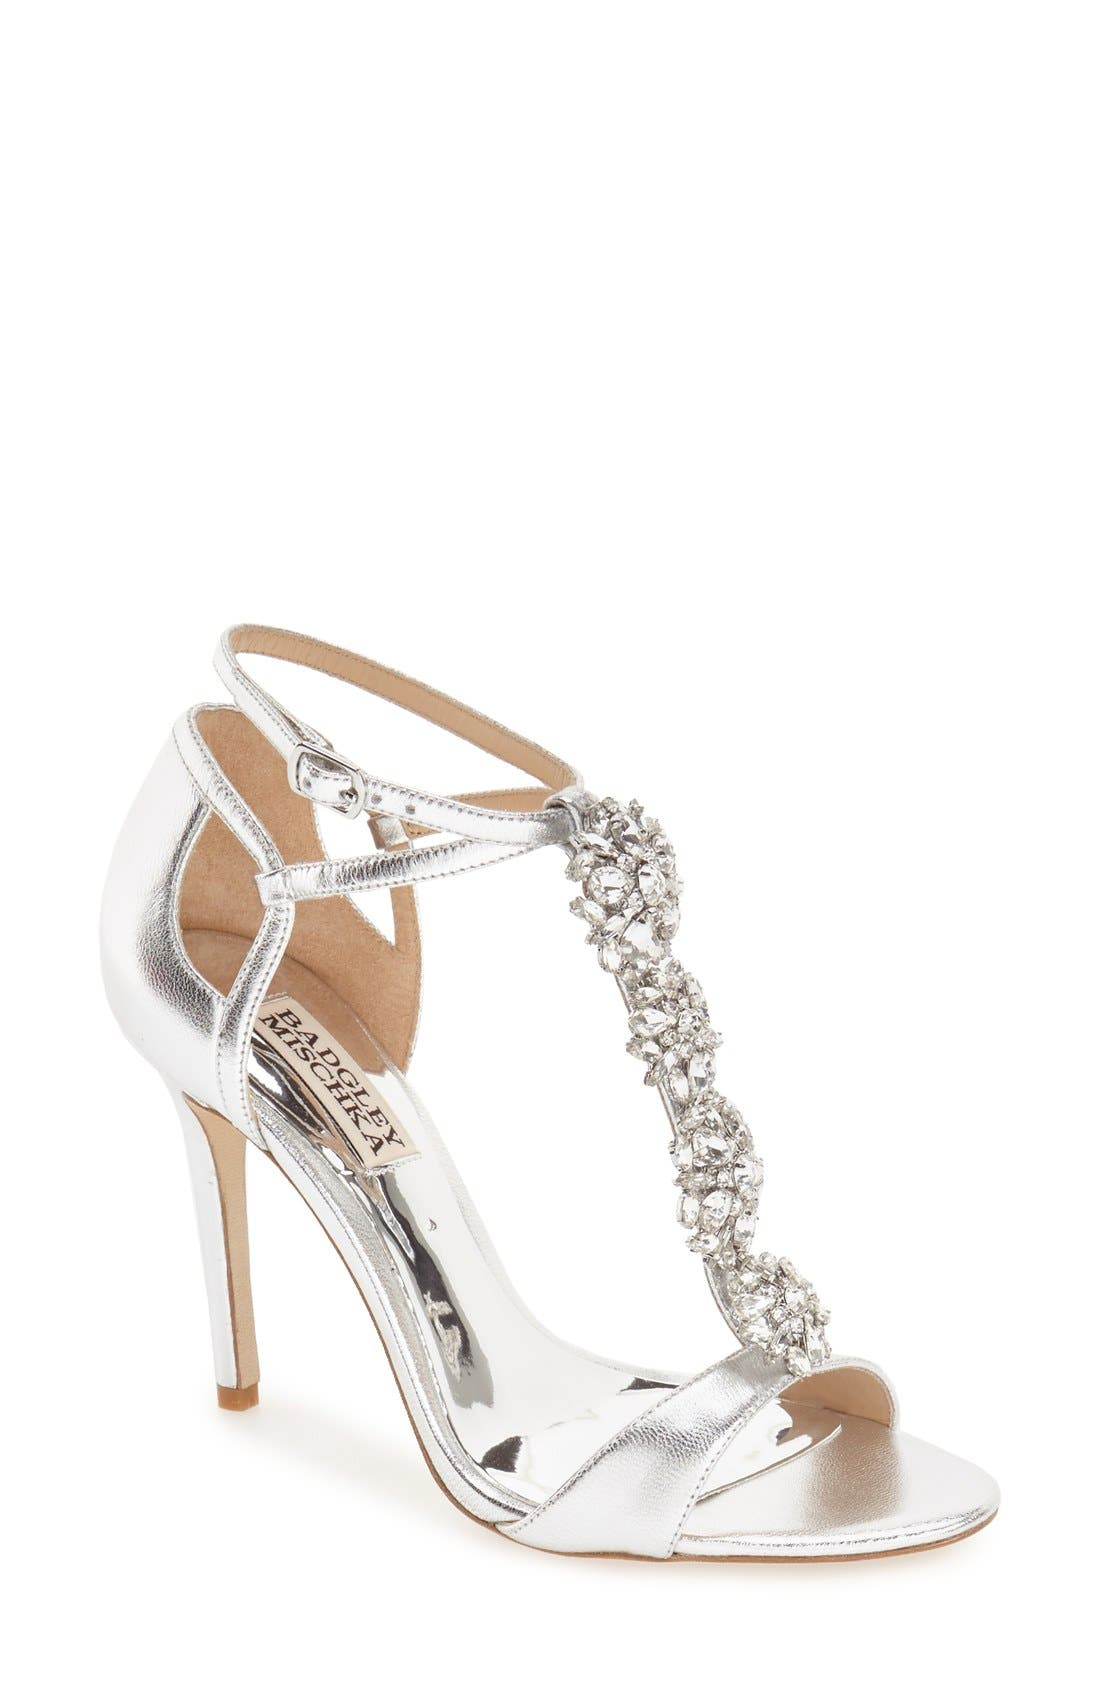 BADGLEY MISCHKA COLLECTION Badgley Mischka 'Leigh' Embellished Evening Sandal, Main, color, 046